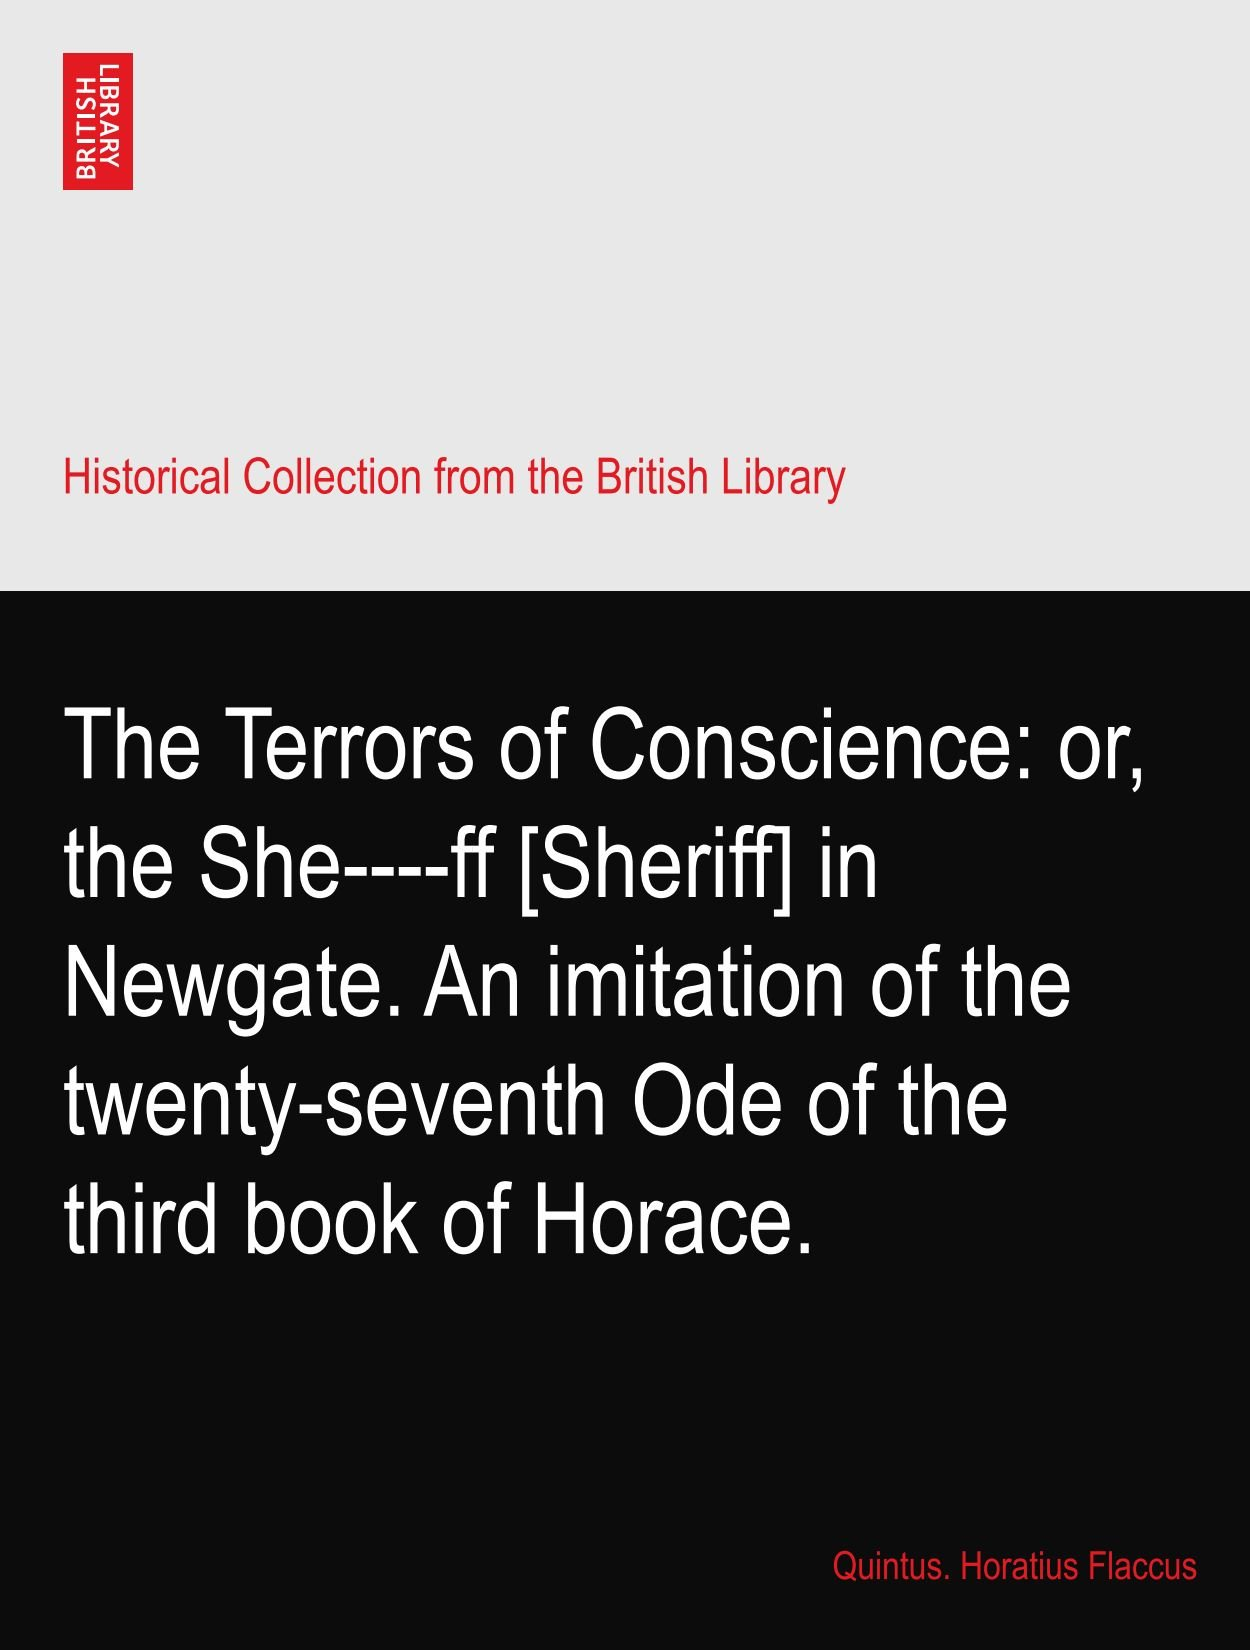 Read Online The Terrors of Conscience: or, the She----ff [Sheriff] in Newgate. An imitation of the twenty-seventh Ode of the third book of Horace. PDF